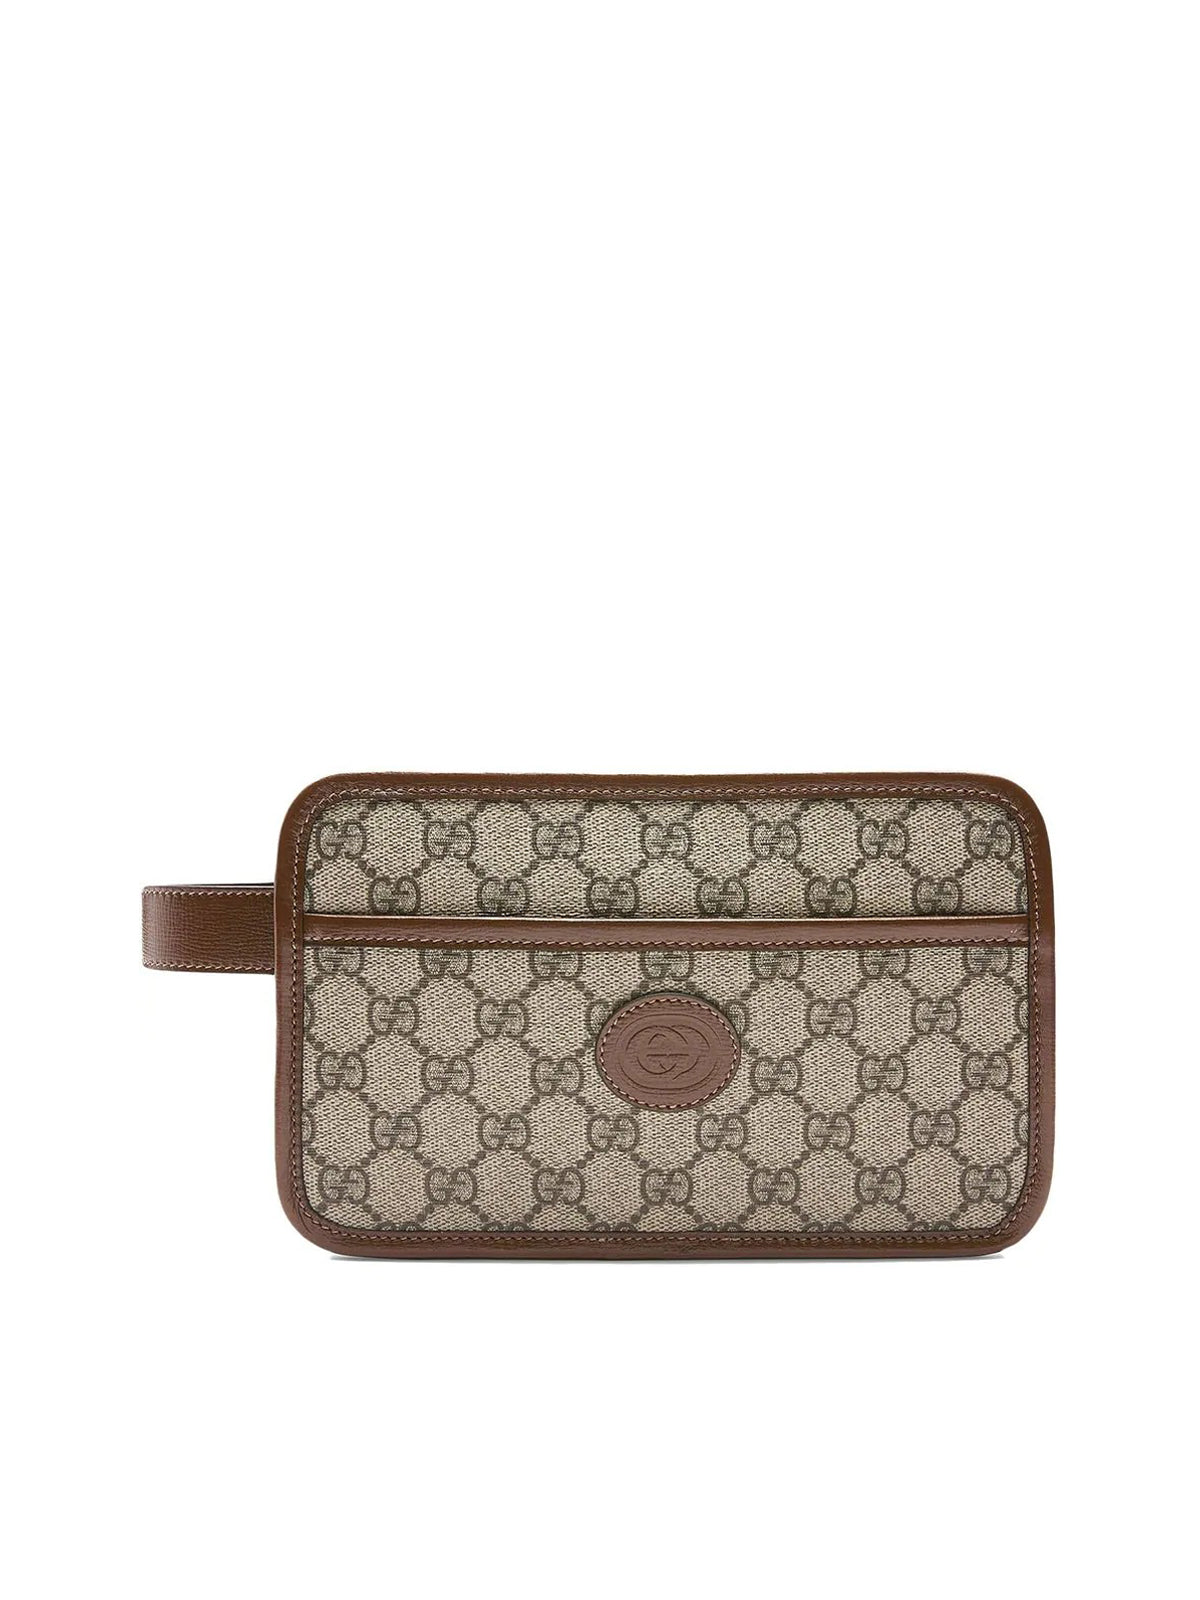 GG travel pouch